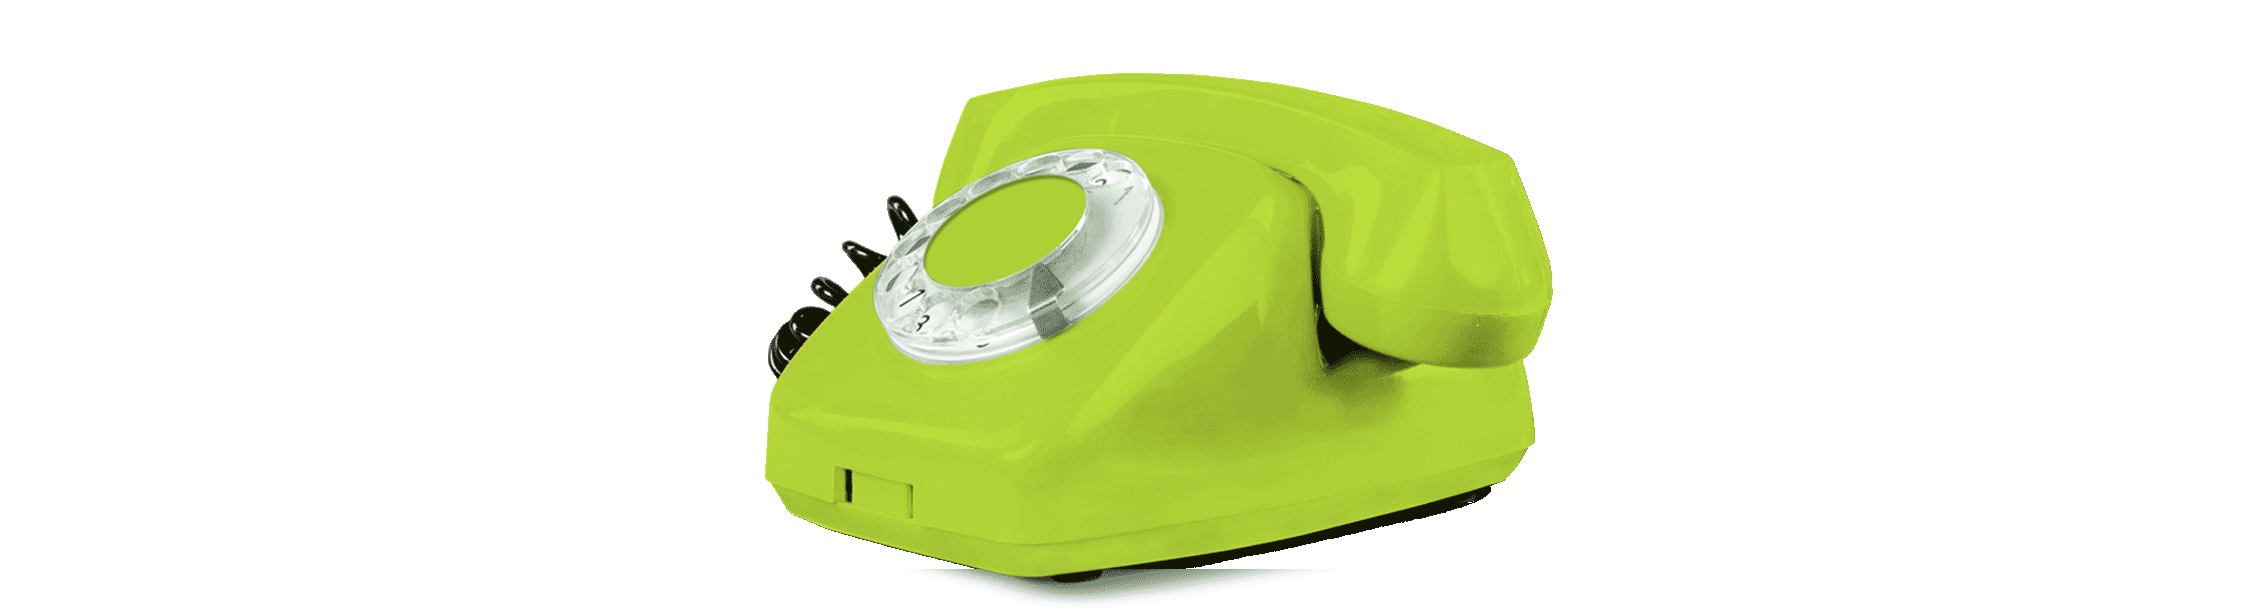 Landline telephone on a JT plan